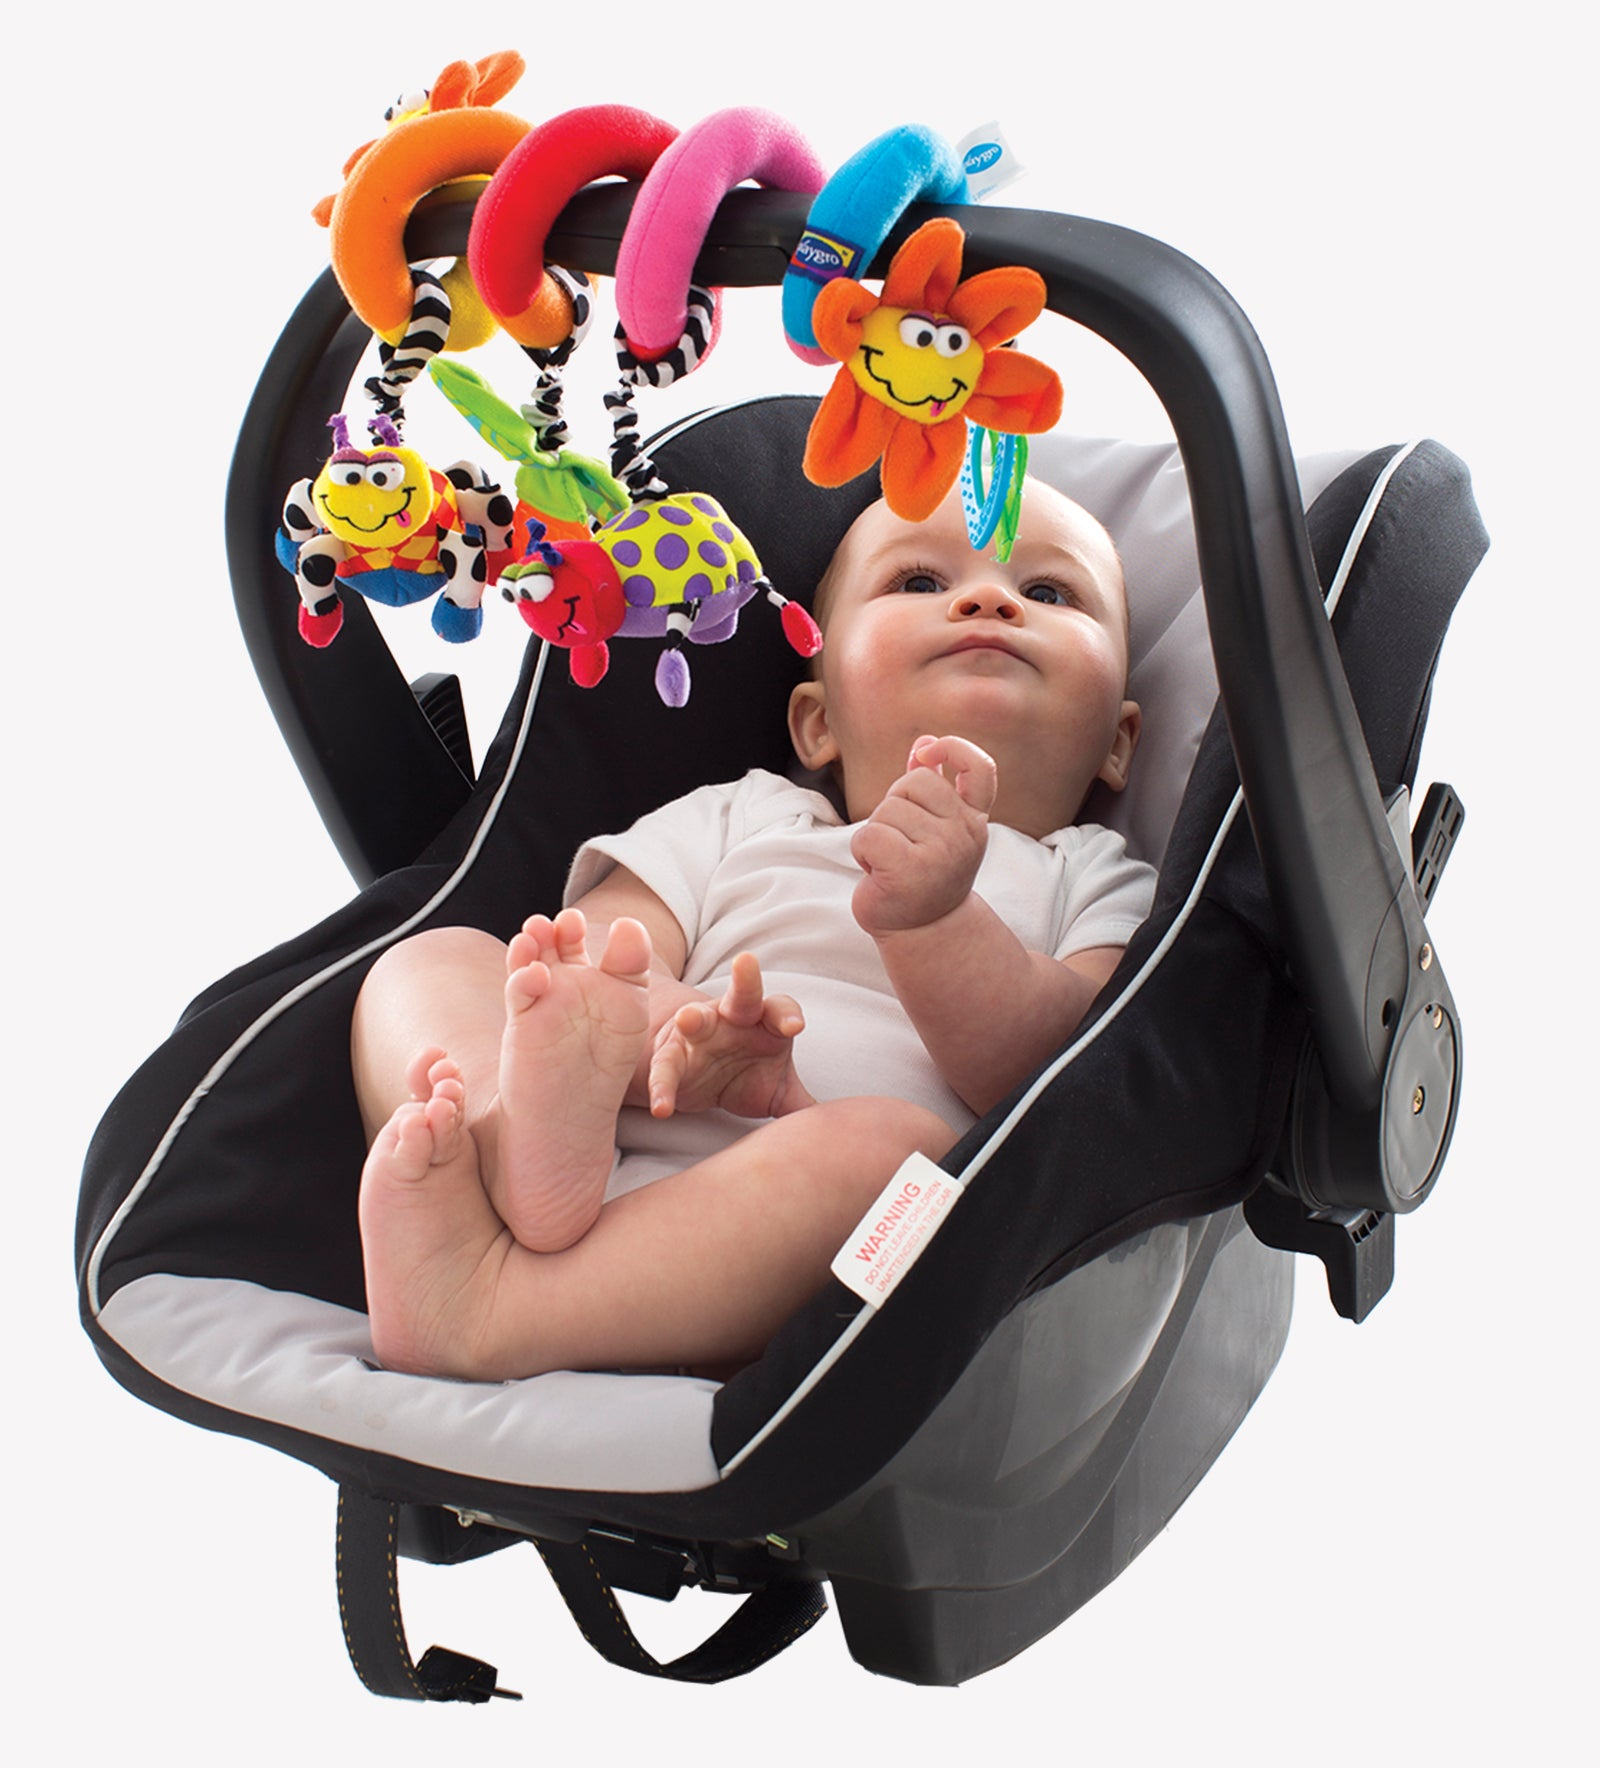 A baby is sitting on his car seat with Playgro Tiwrly toys is twirled on the bumper bar